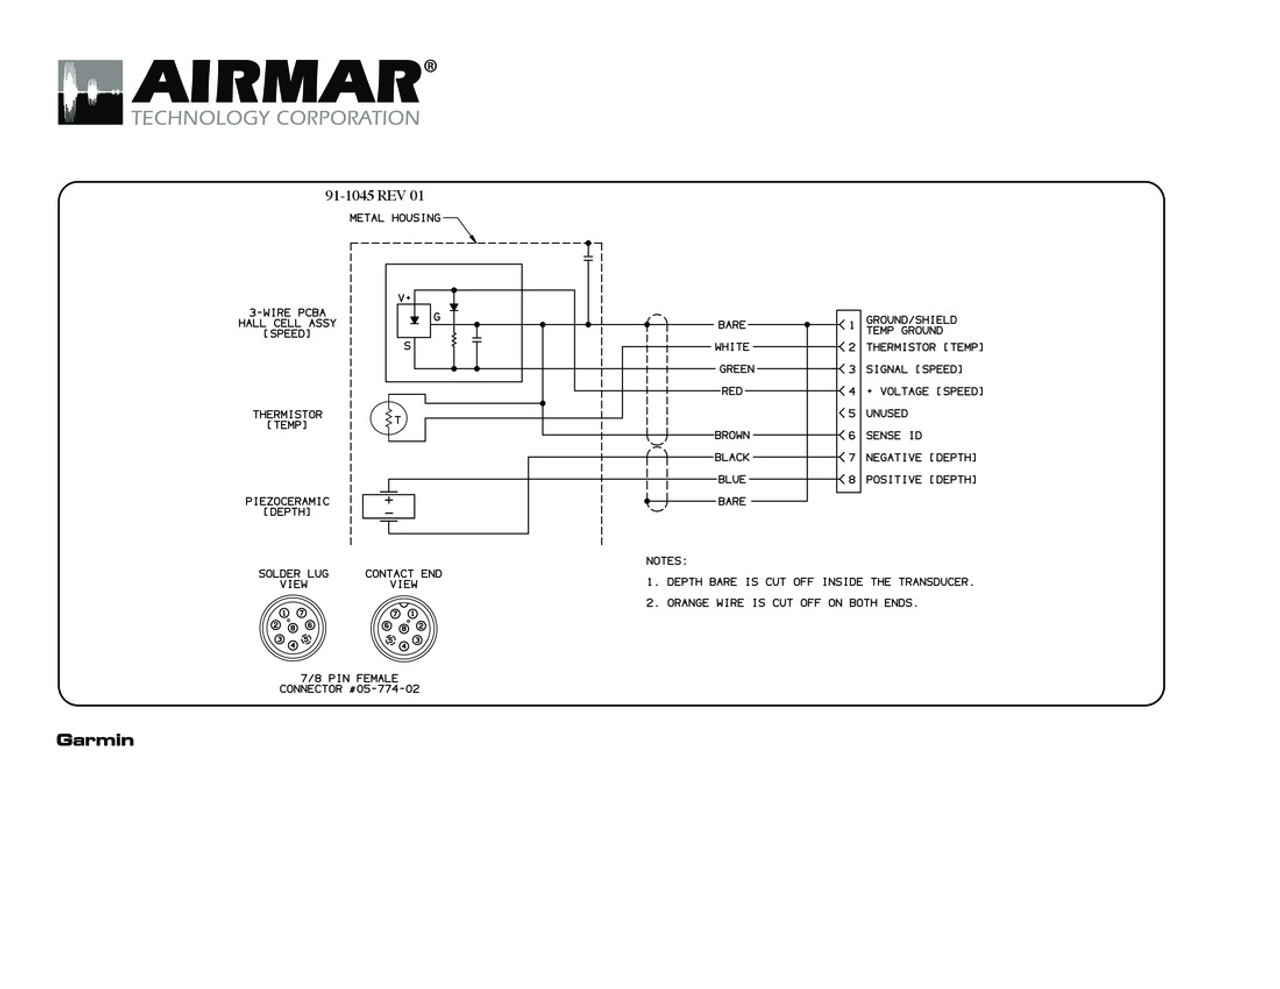 Garmin 530 Wiring Diagram - Wiring Diagram M4 on